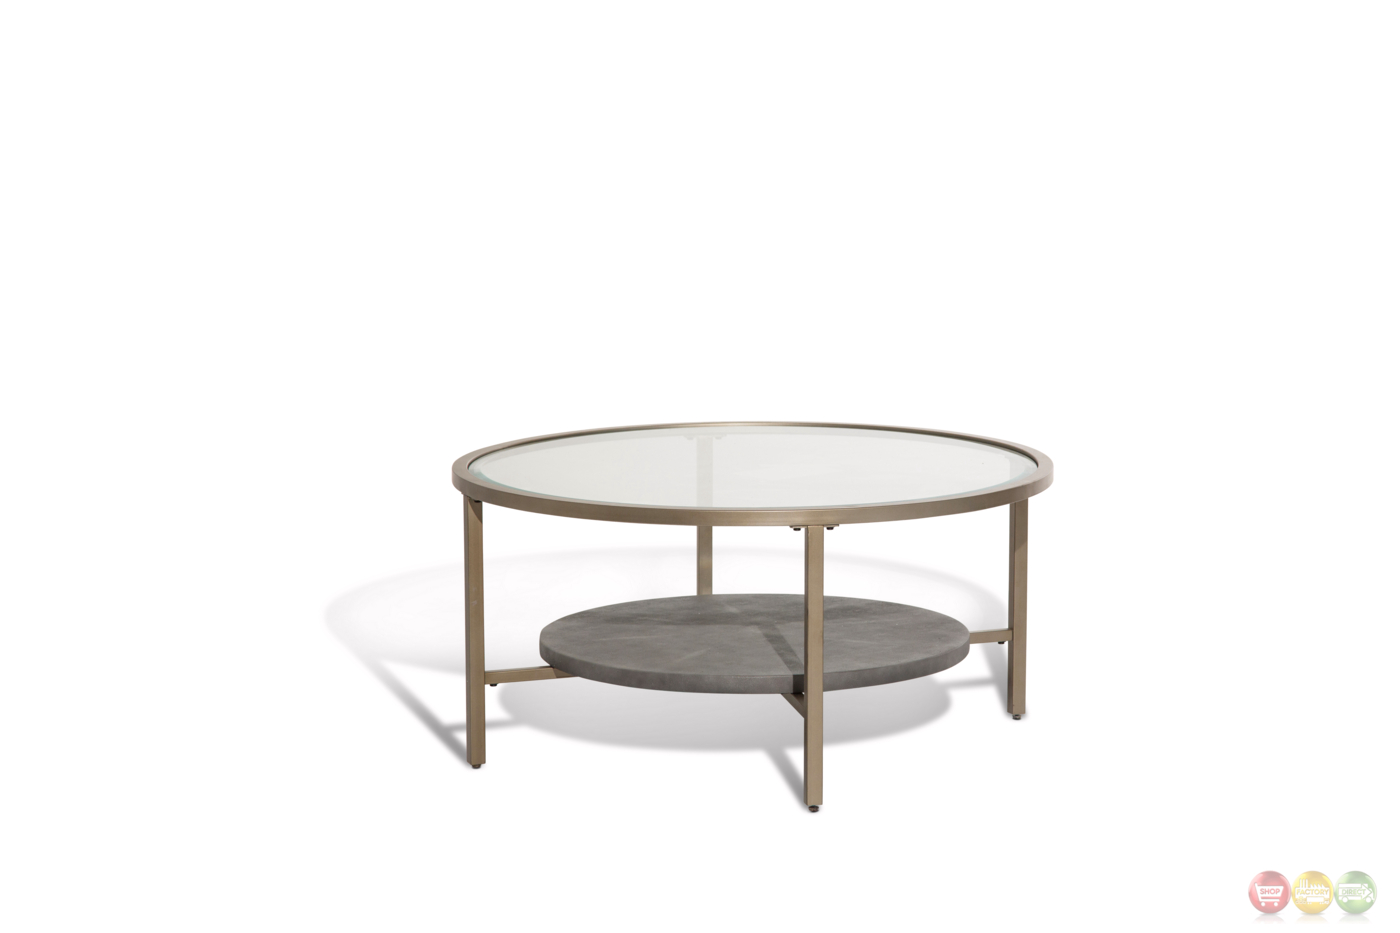 Heavenly casual round coffee table with glass top and gold metal finish Gold metal coffee table